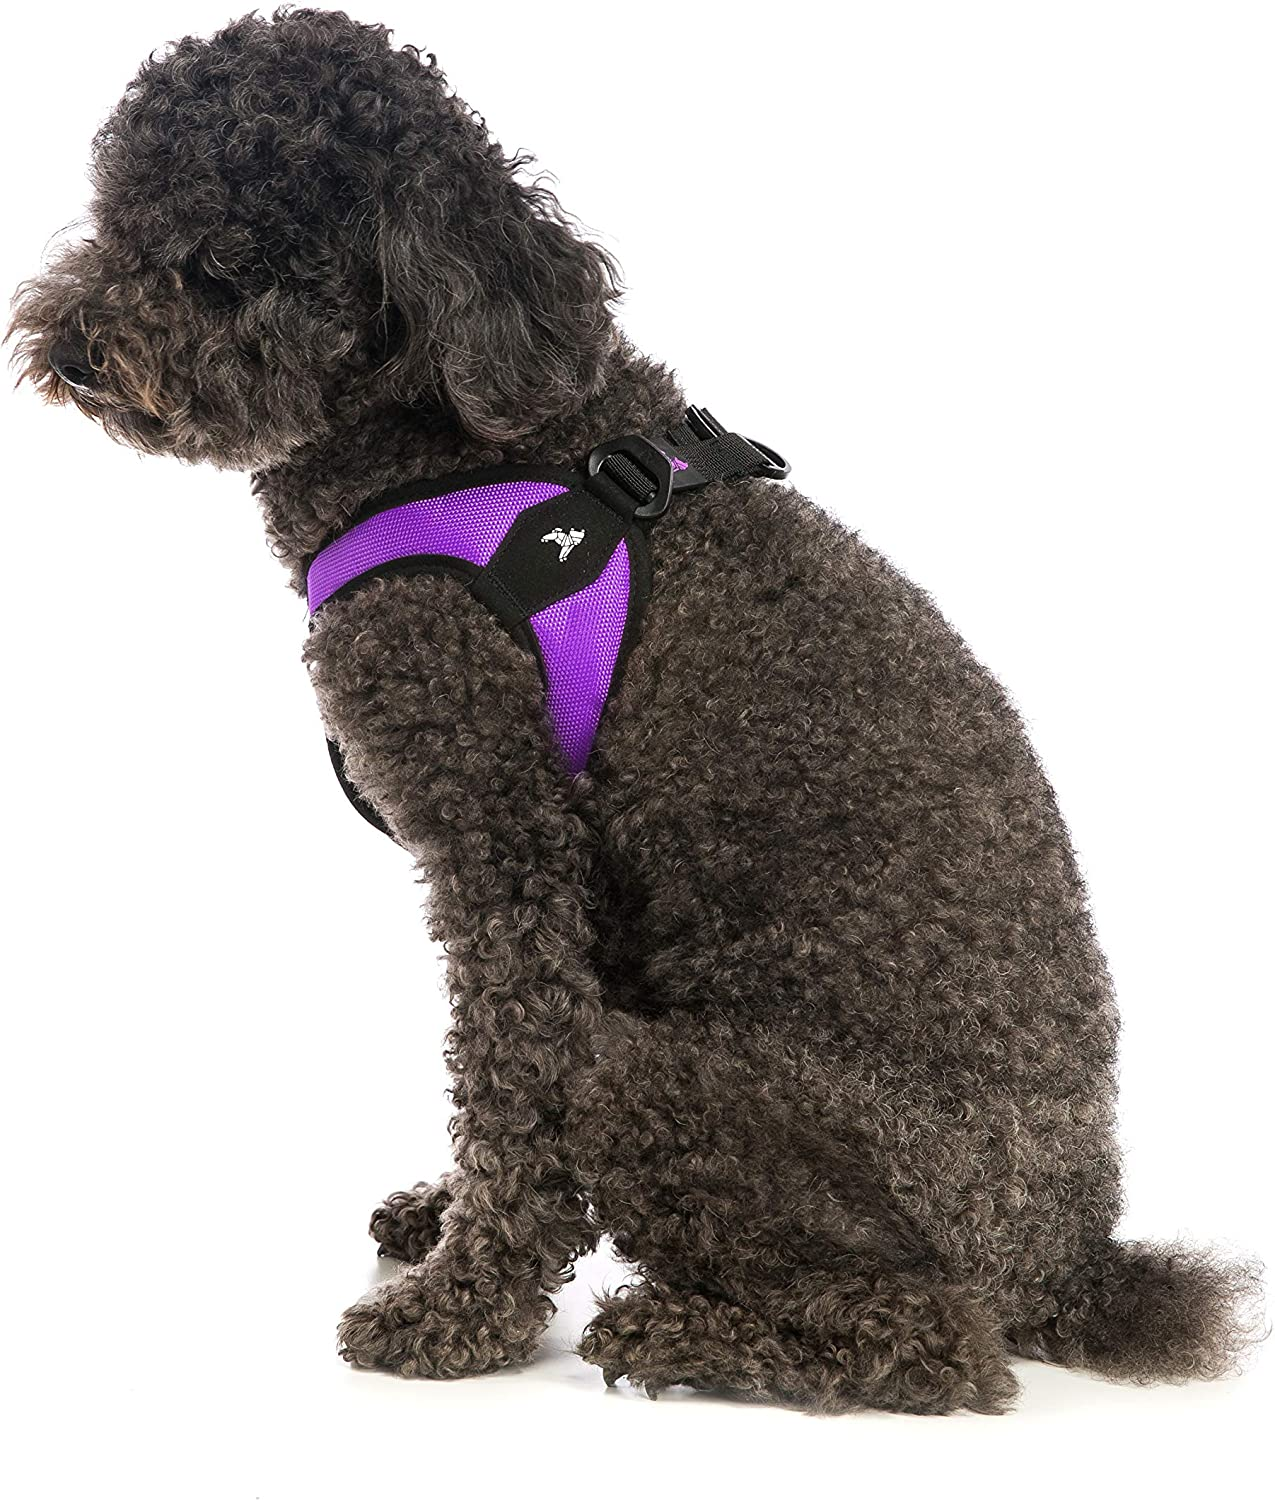 Gooby  Escape Free Easy Fit Harness, Small Dog Stepin Harness for Dogs That Like to Escape Their Harness, Purple, Medium